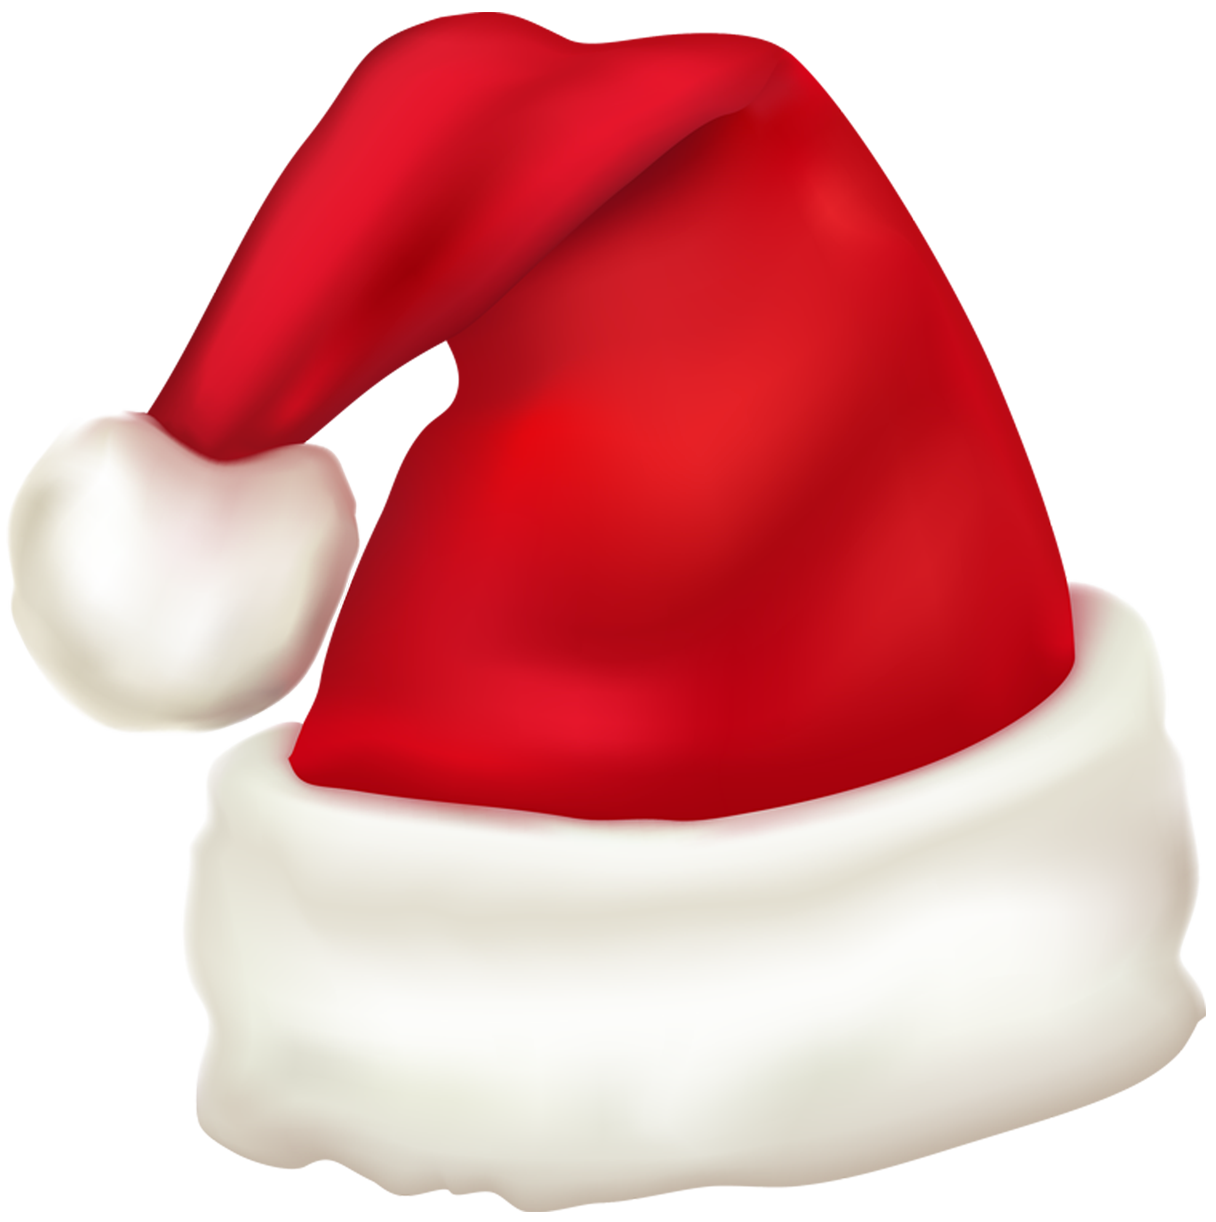 Santa Hat Png Transparent Background Christmas.